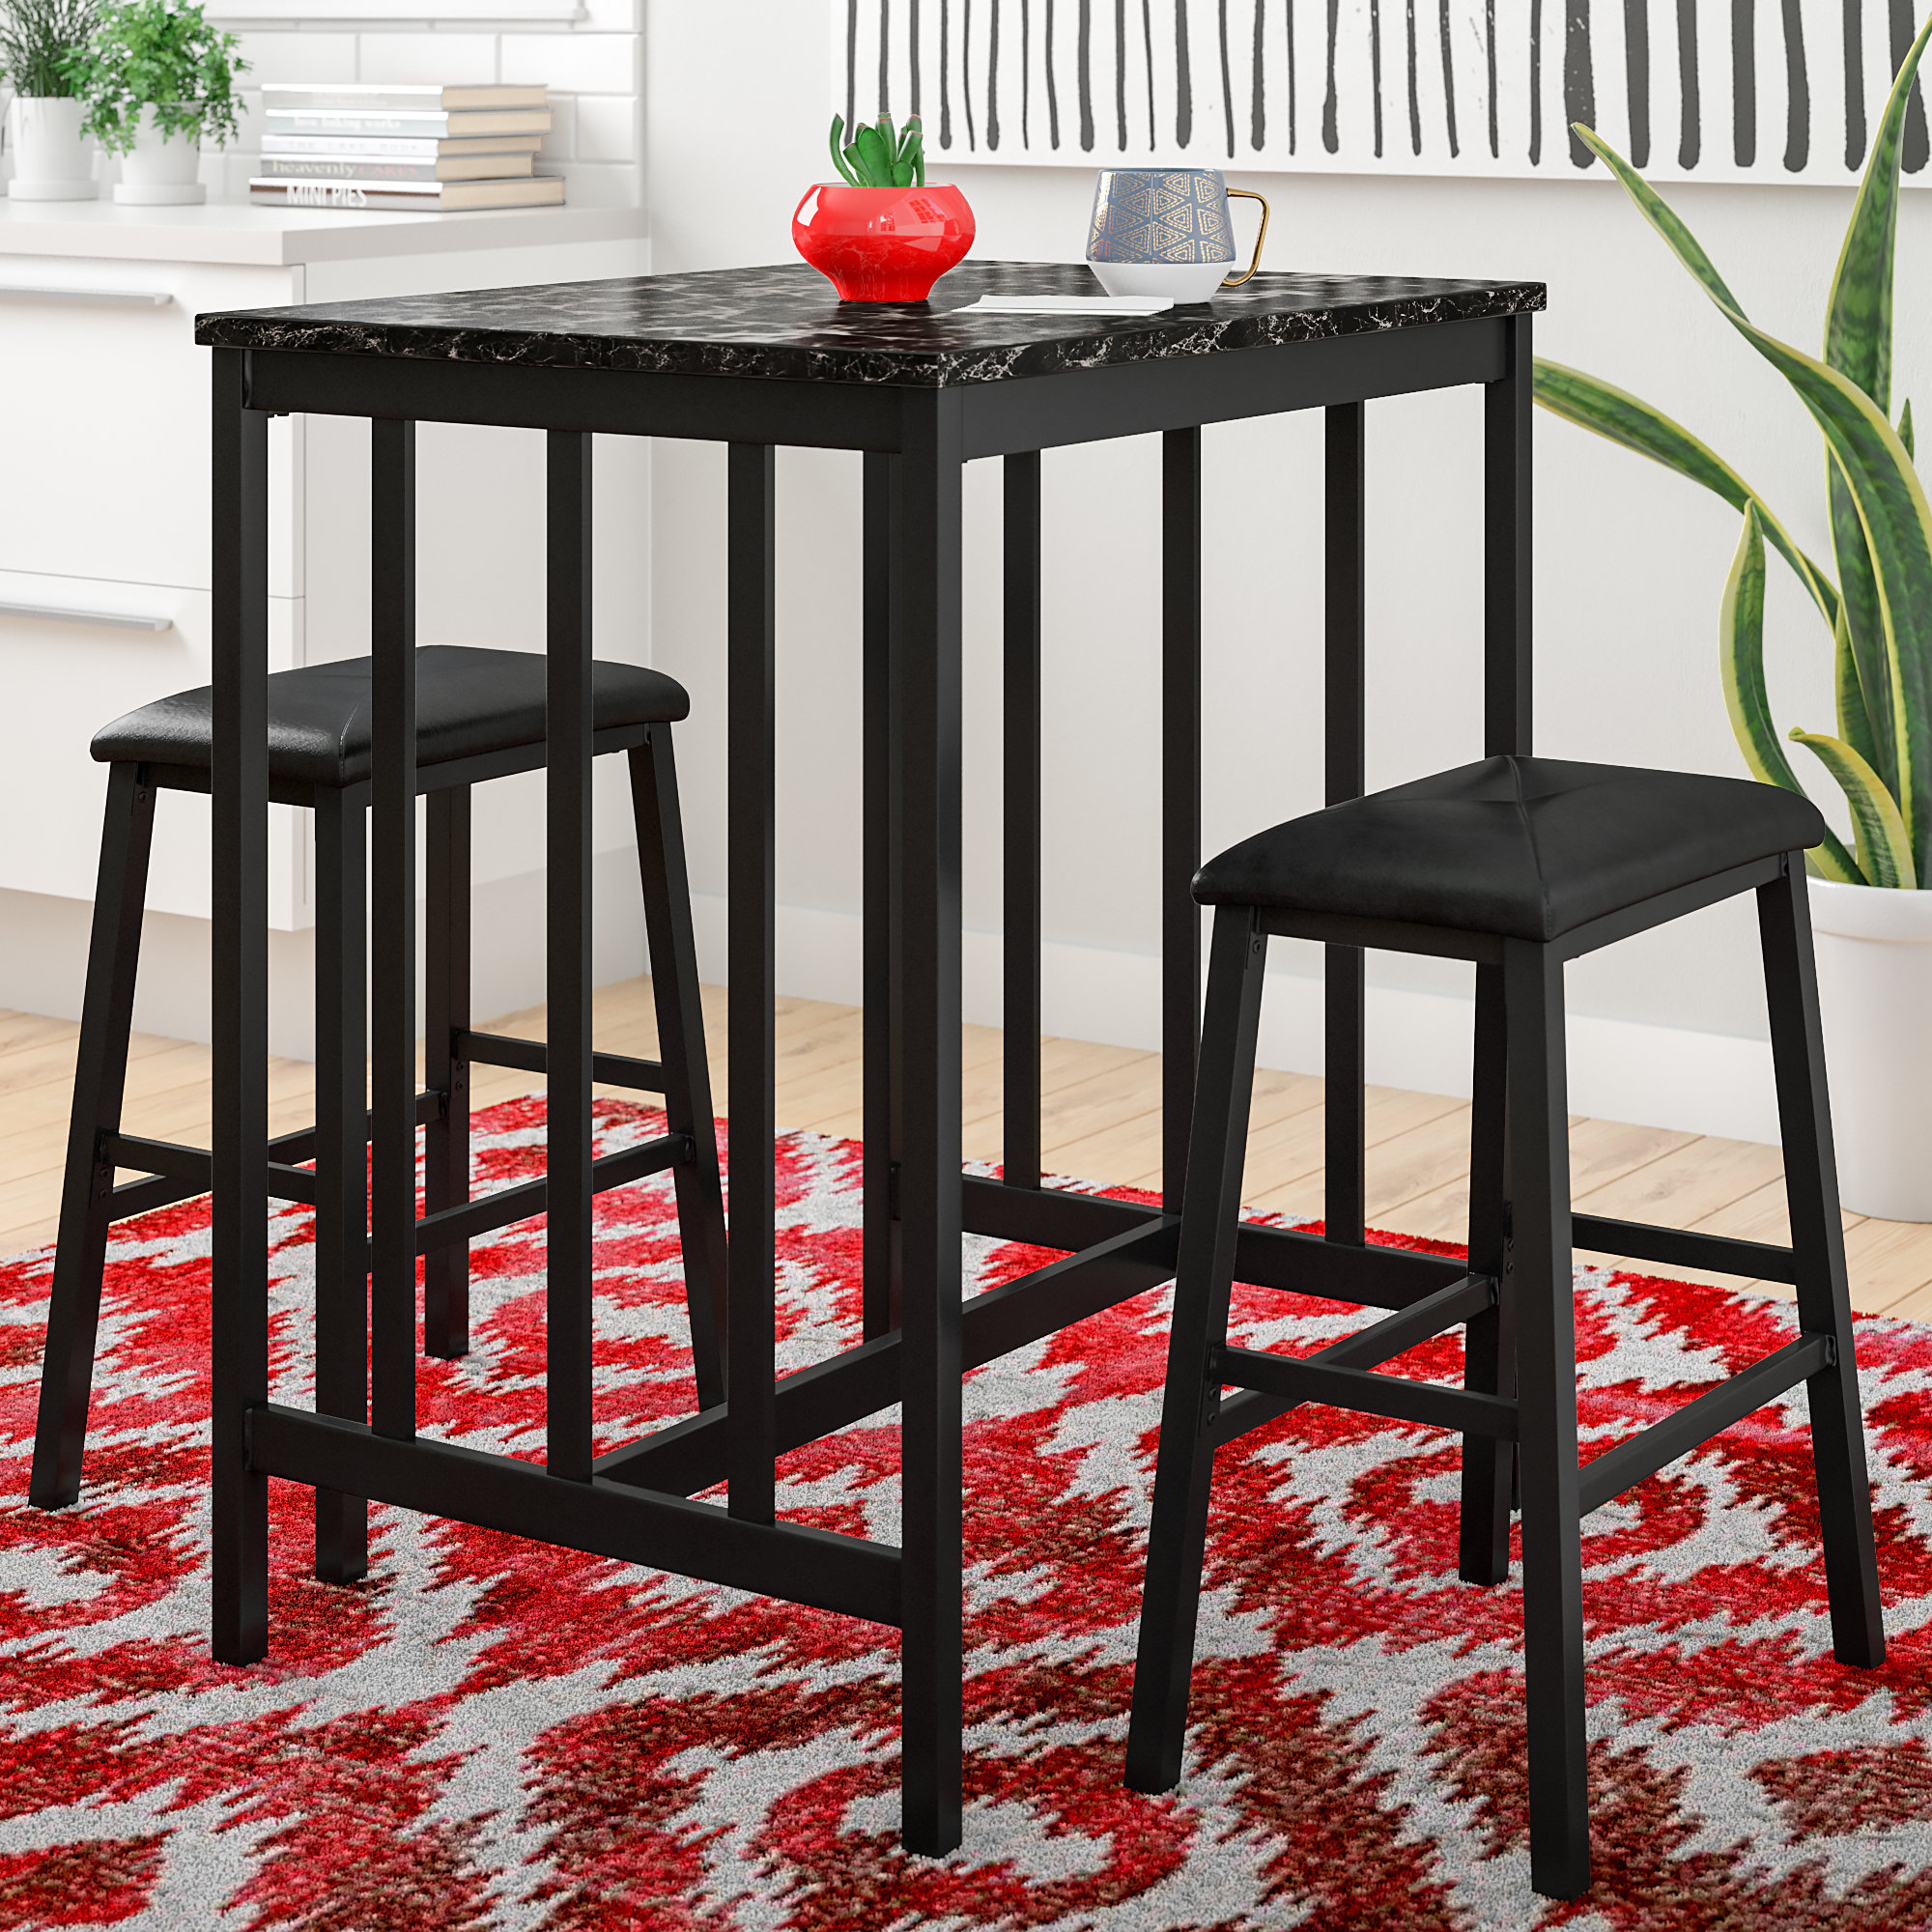 2019 Andover Mills Della 3 Piece Pub Table Set & Reviews (View 9 of 20)